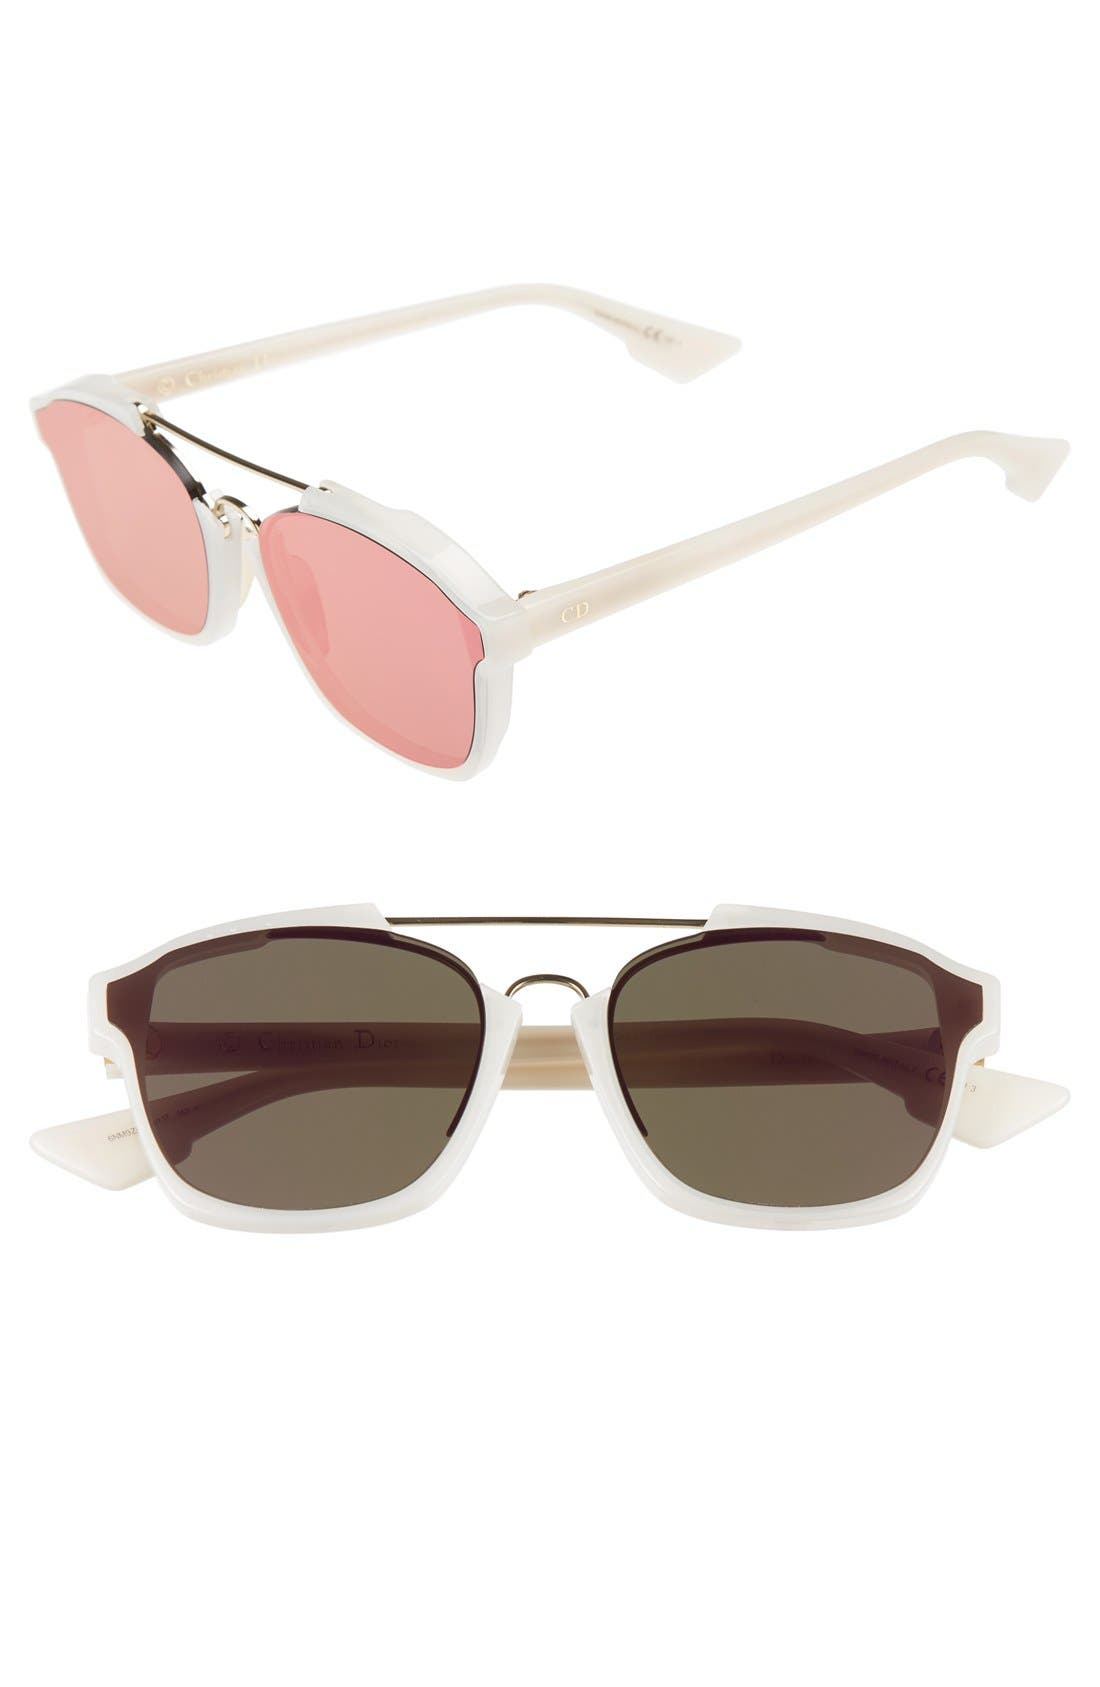 Dior Abstract 58mm Brow Bar Sunglasses